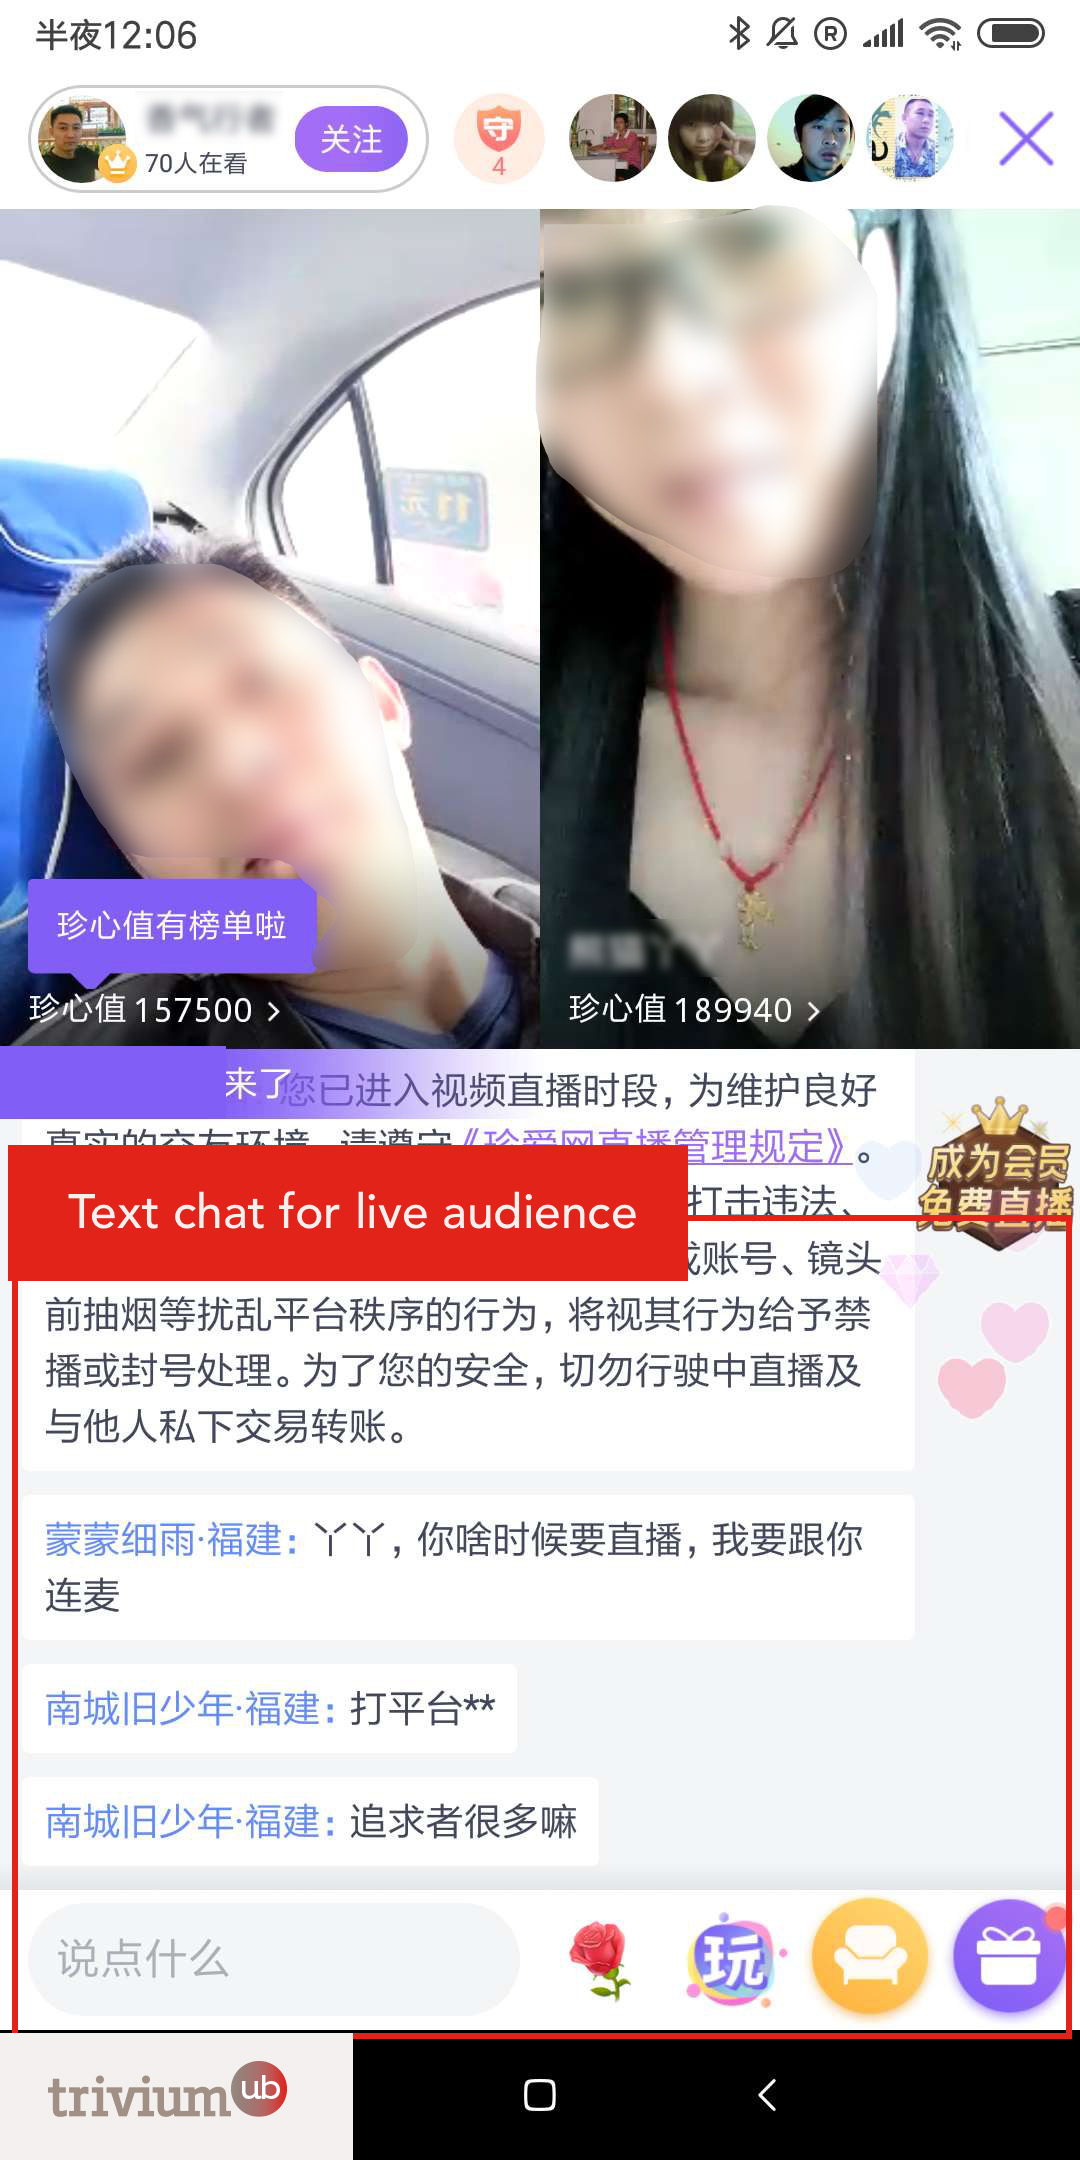 China market research: dating apps matchmaking love apps live-streaming video